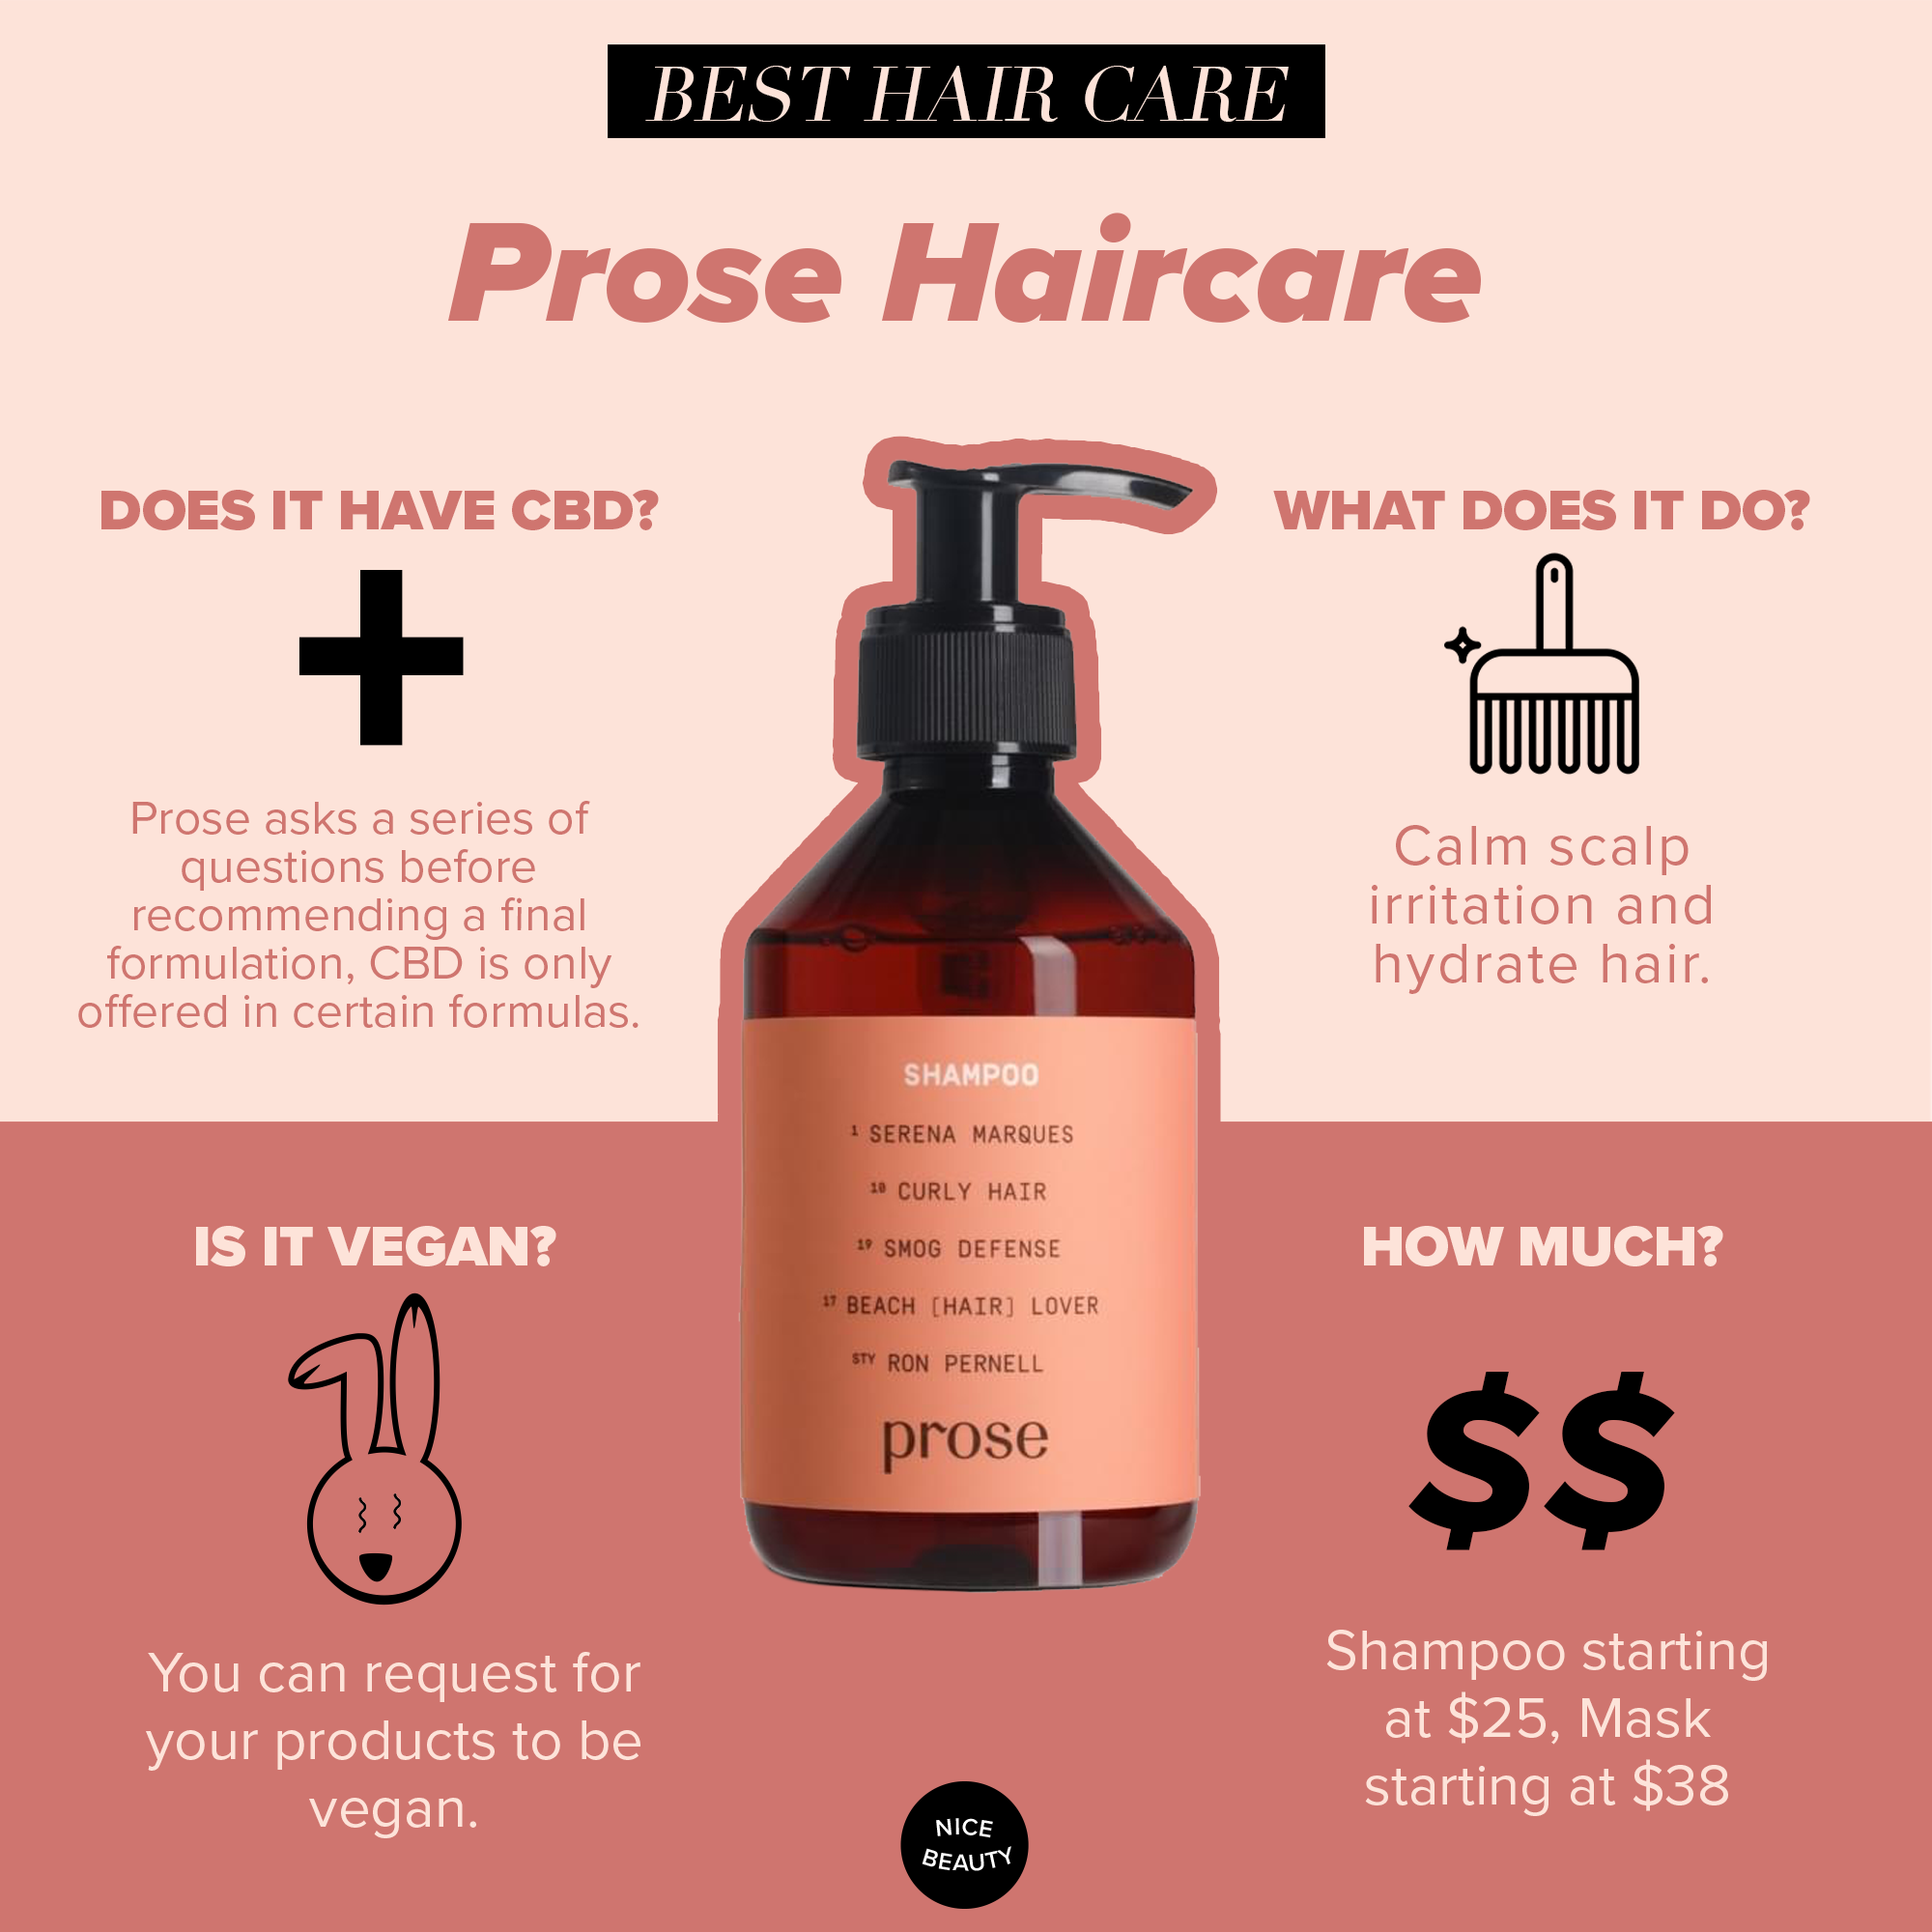 Prose Haircare - Prose has turned the haircare model on its head by offering customized products for your personal follicles and scalp needs. It's like a choose-your-own-adventure, but at the end of the adventure Rapunzel is asking you for hair hacks. Everyone that visits Prose has to answer a survey, so no two people will receive the same exact formulation (unless if you're hair twins, in which case, congratulations!). If you experience scalp irritation, dryness, inflammation or flaking, Prose may recommend CBD as one of the ingredients in your customized hair formula. While your results may not require the CBD add-on, hair care tailored to you always feels nice.